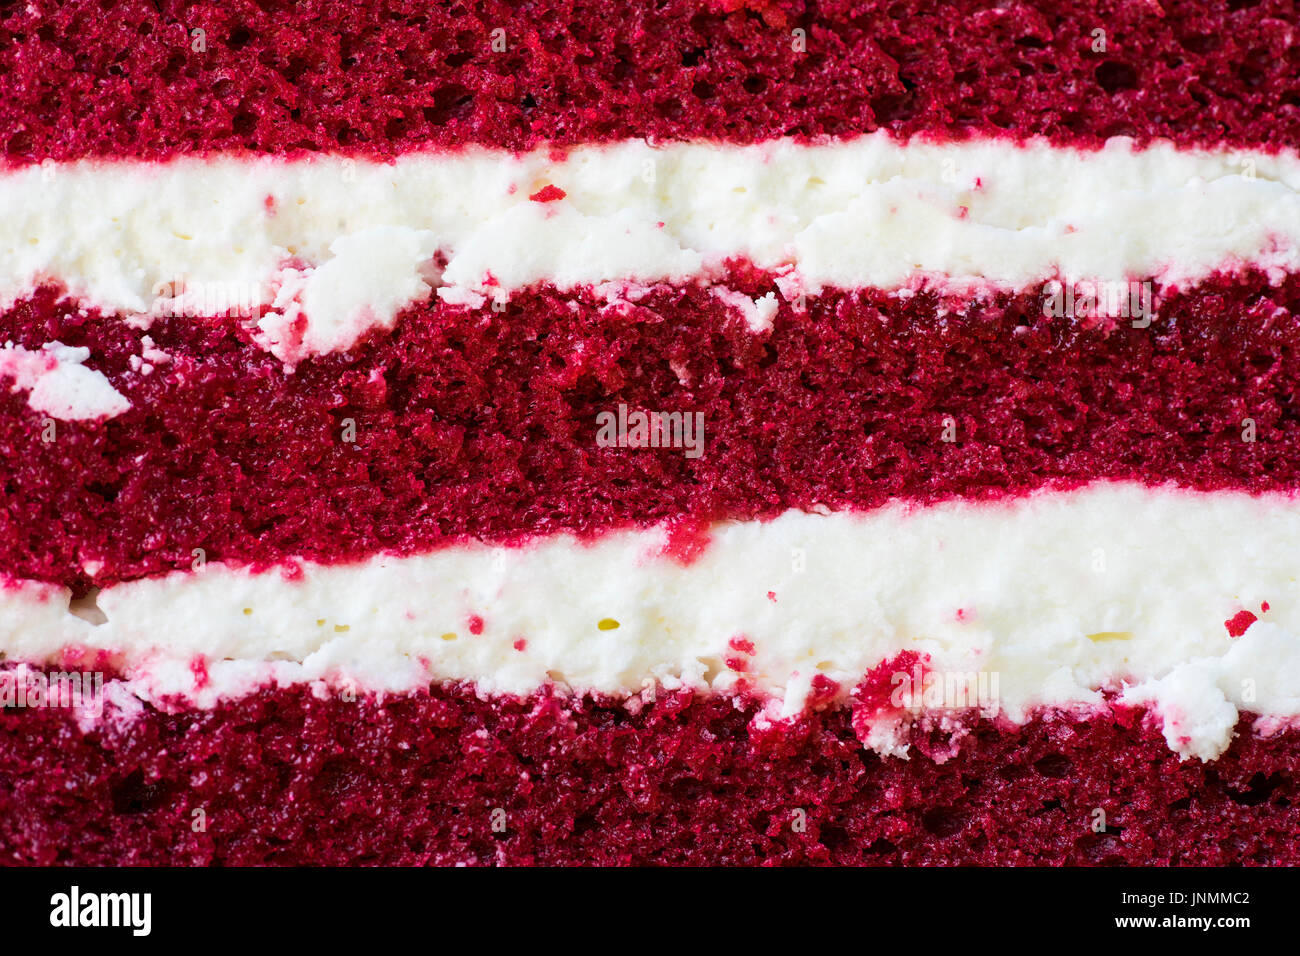 red velvet cake texture background can use to display or montage on stock photo alamy https www alamy com red velvet cake texture background can use to display or montage on image151045778 html